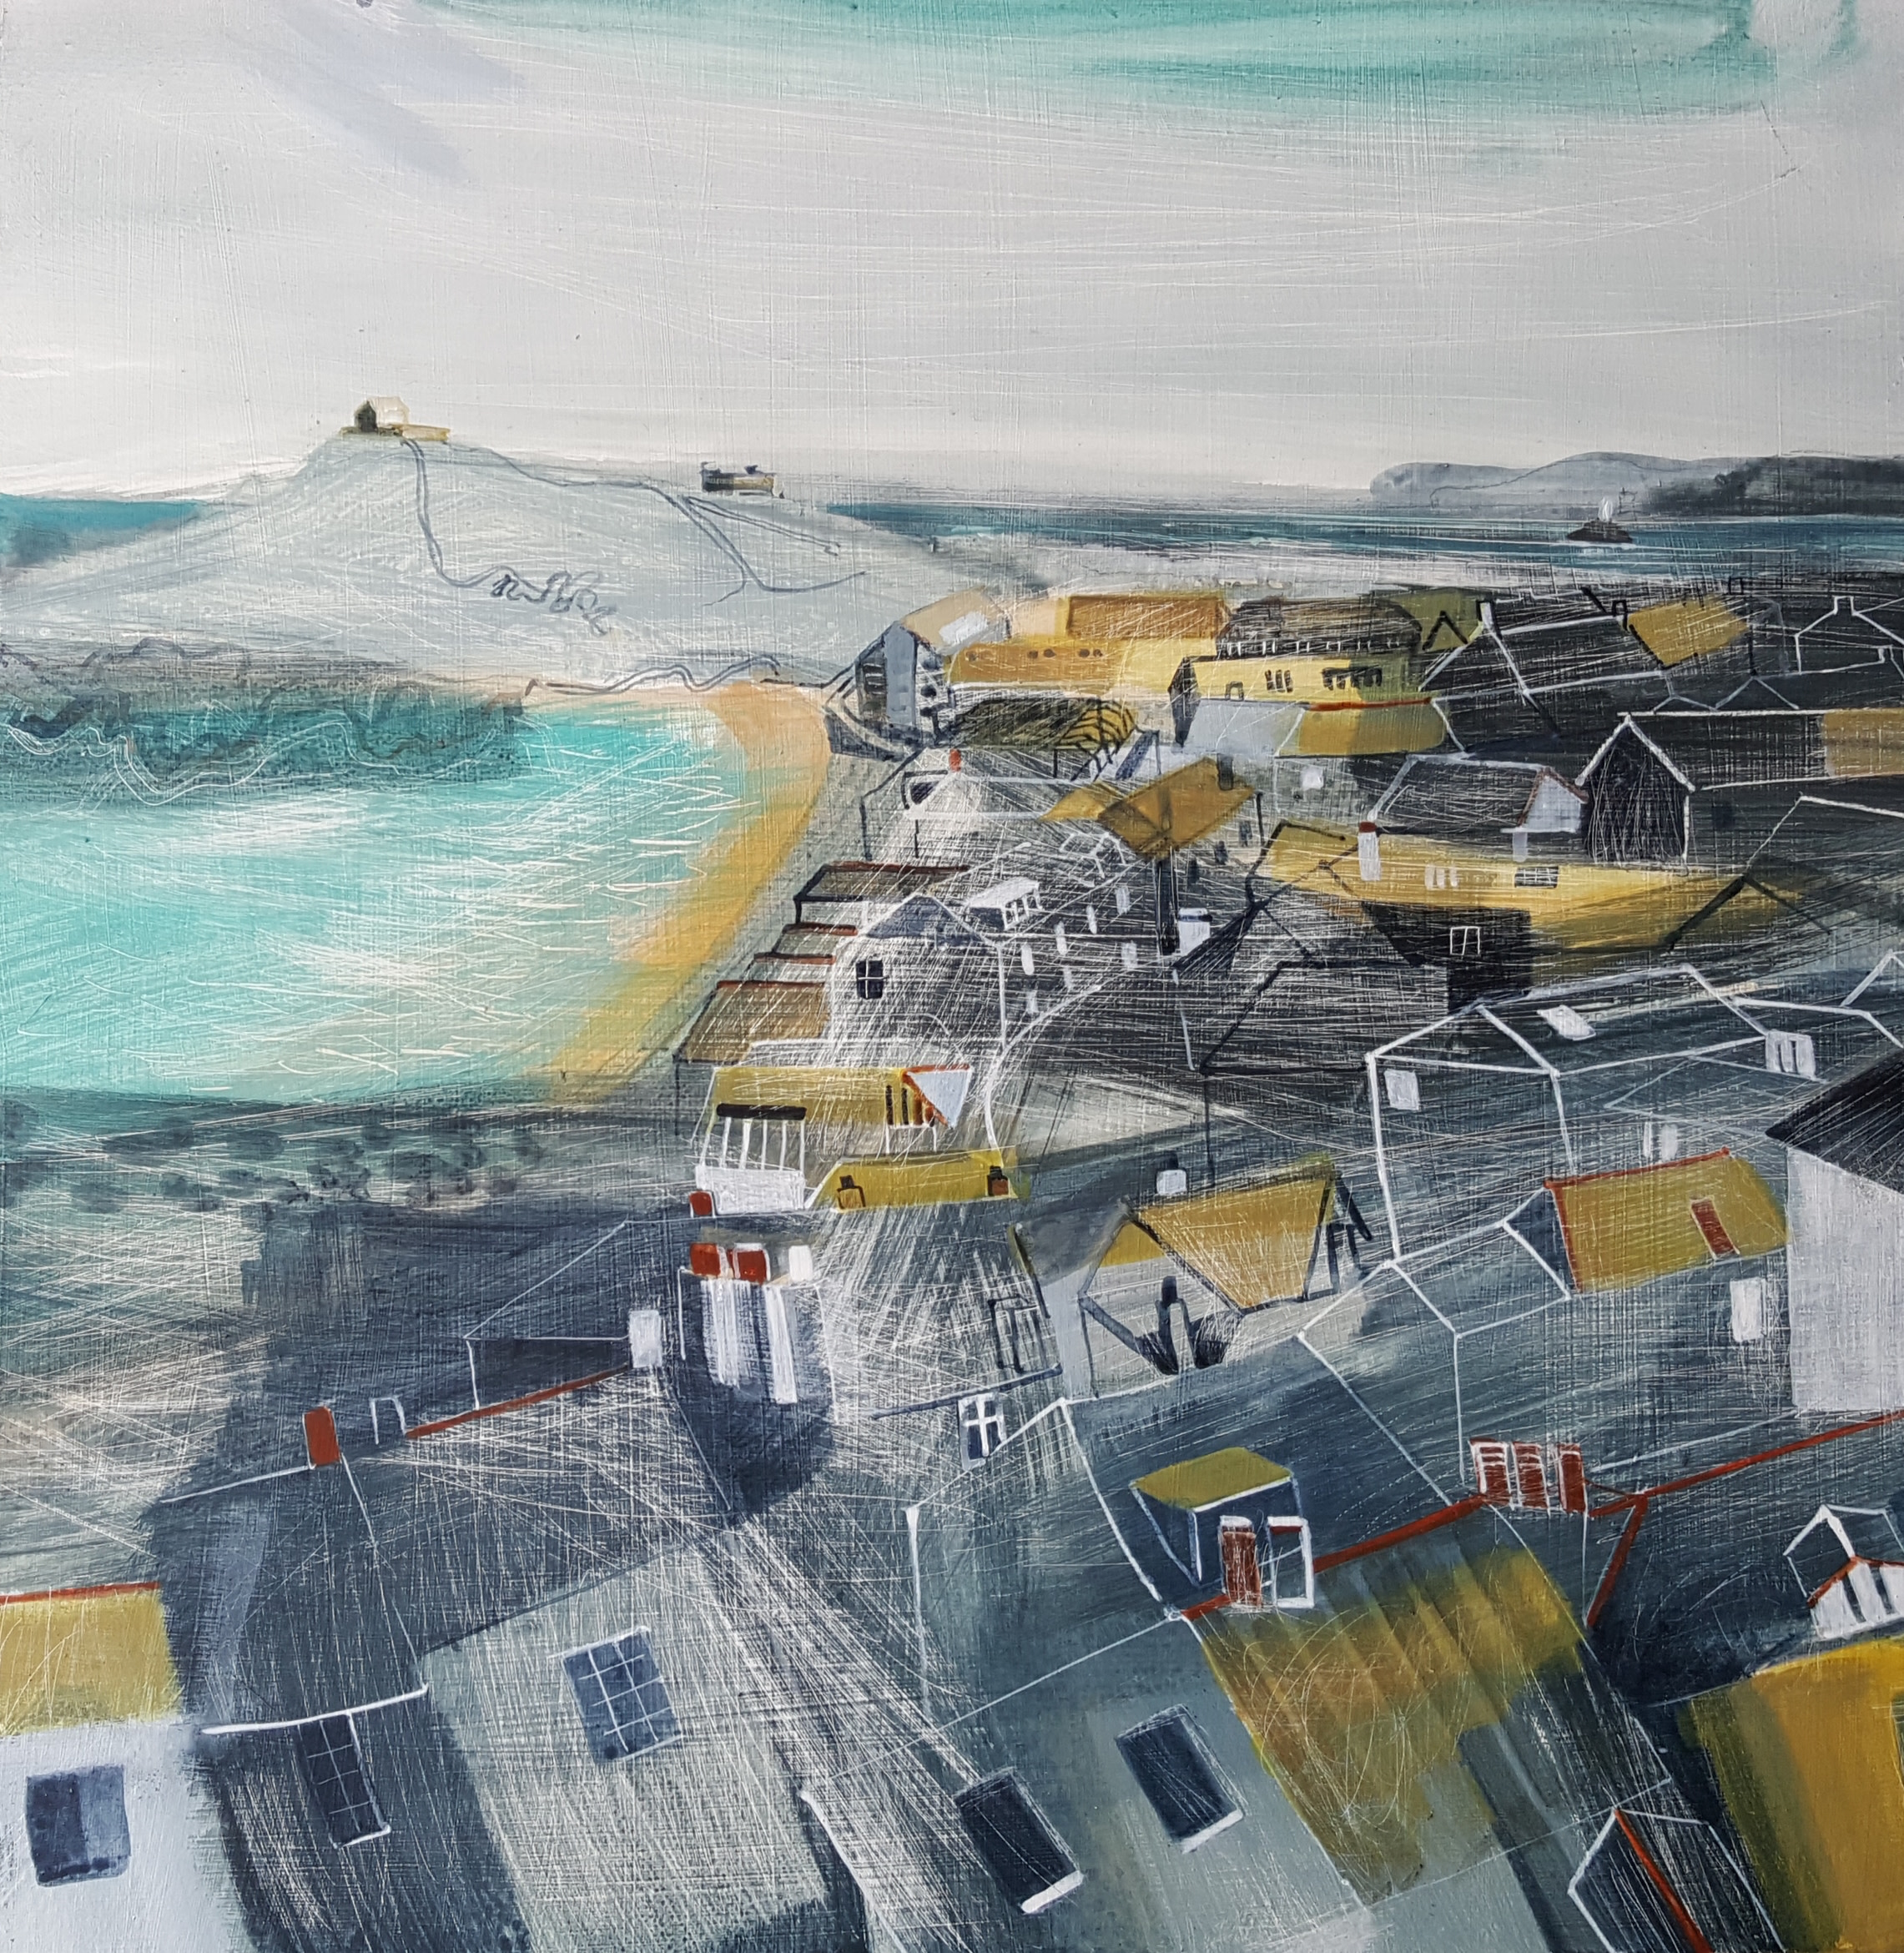 <span class=&#34;link fancybox-details-link&#34;><a href=&#34;/artists/177-jane-askey/works/5519-jane-askey-windswept-porthmeor-and-st-ives-rooftops-2018/&#34;>View Detail Page</a></span><div class=&#34;artist&#34;><strong>Jane Askey</strong></div> <div class=&#34;title&#34;><em>Windswept Porthmeor and St Ives Rooftops</em>, 2018</div> <div class=&#34;signed_and_dated&#34;>signed</div> <div class=&#34;medium&#34;>mixed media on gesso board</div> <div class=&#34;dimensions&#34;>59 x 59 cm<br /> 23 1/4 x 23 1/4 inches</div><div class=&#34;copyright_line&#34;>OwnArt: £ 69.50 x 10 Months, 0% APR</div>